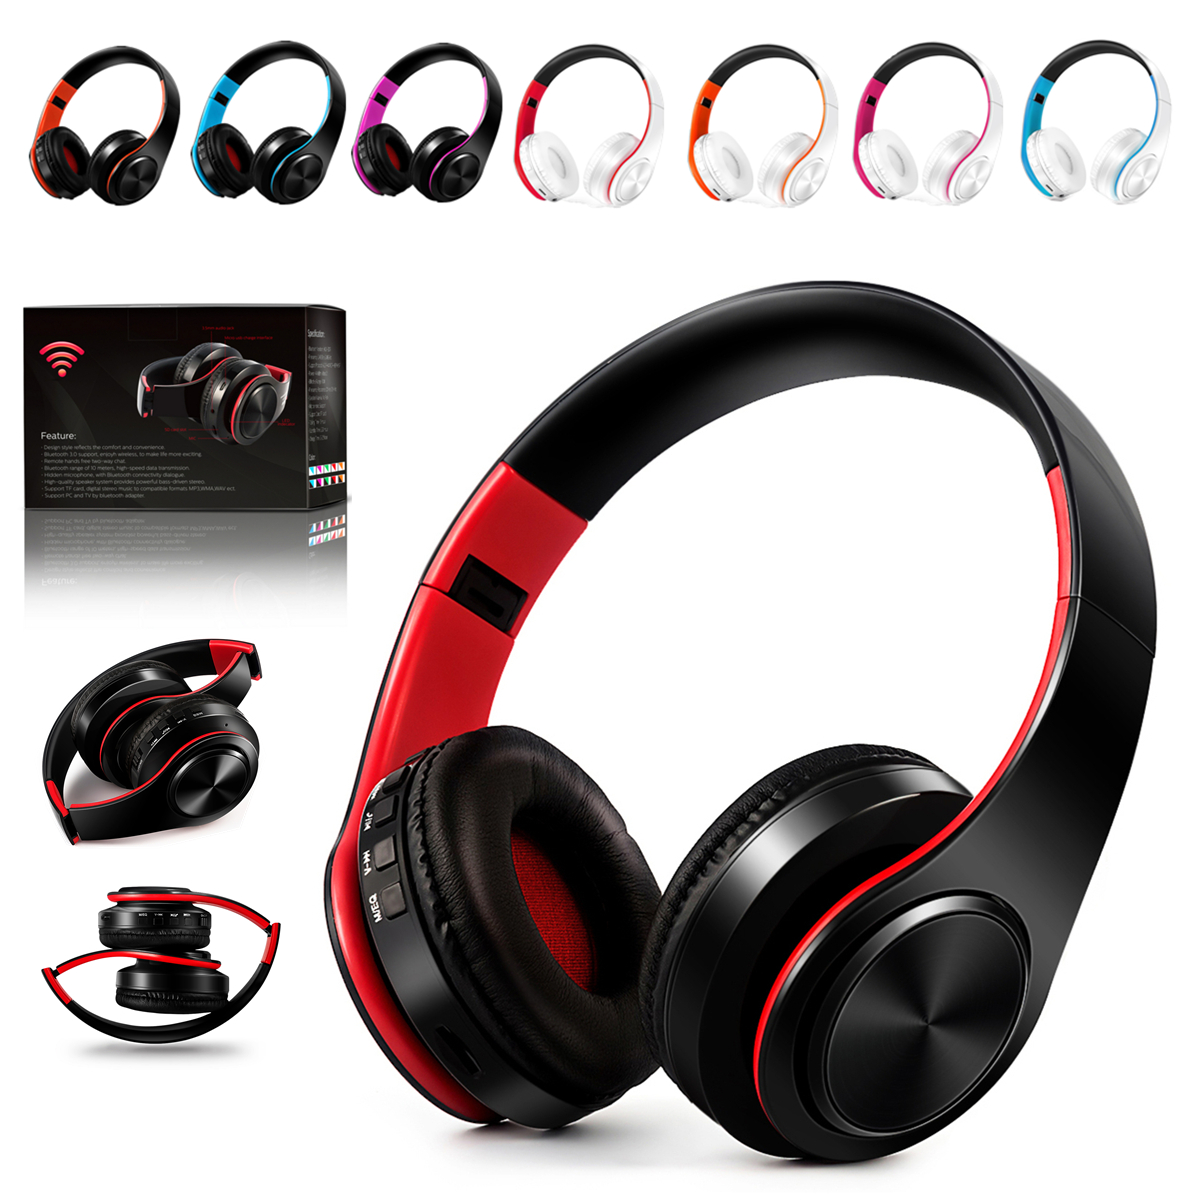 Hi-Fi Stereo Bass Bluetooth Sports Headphone Headset Foldable FM Radio ,Noise Cancelling Mic TF AUX Over Ear Wireless/Wired ,Soft Memory-Protein Earmuffs For PC/Cell Phones/TV